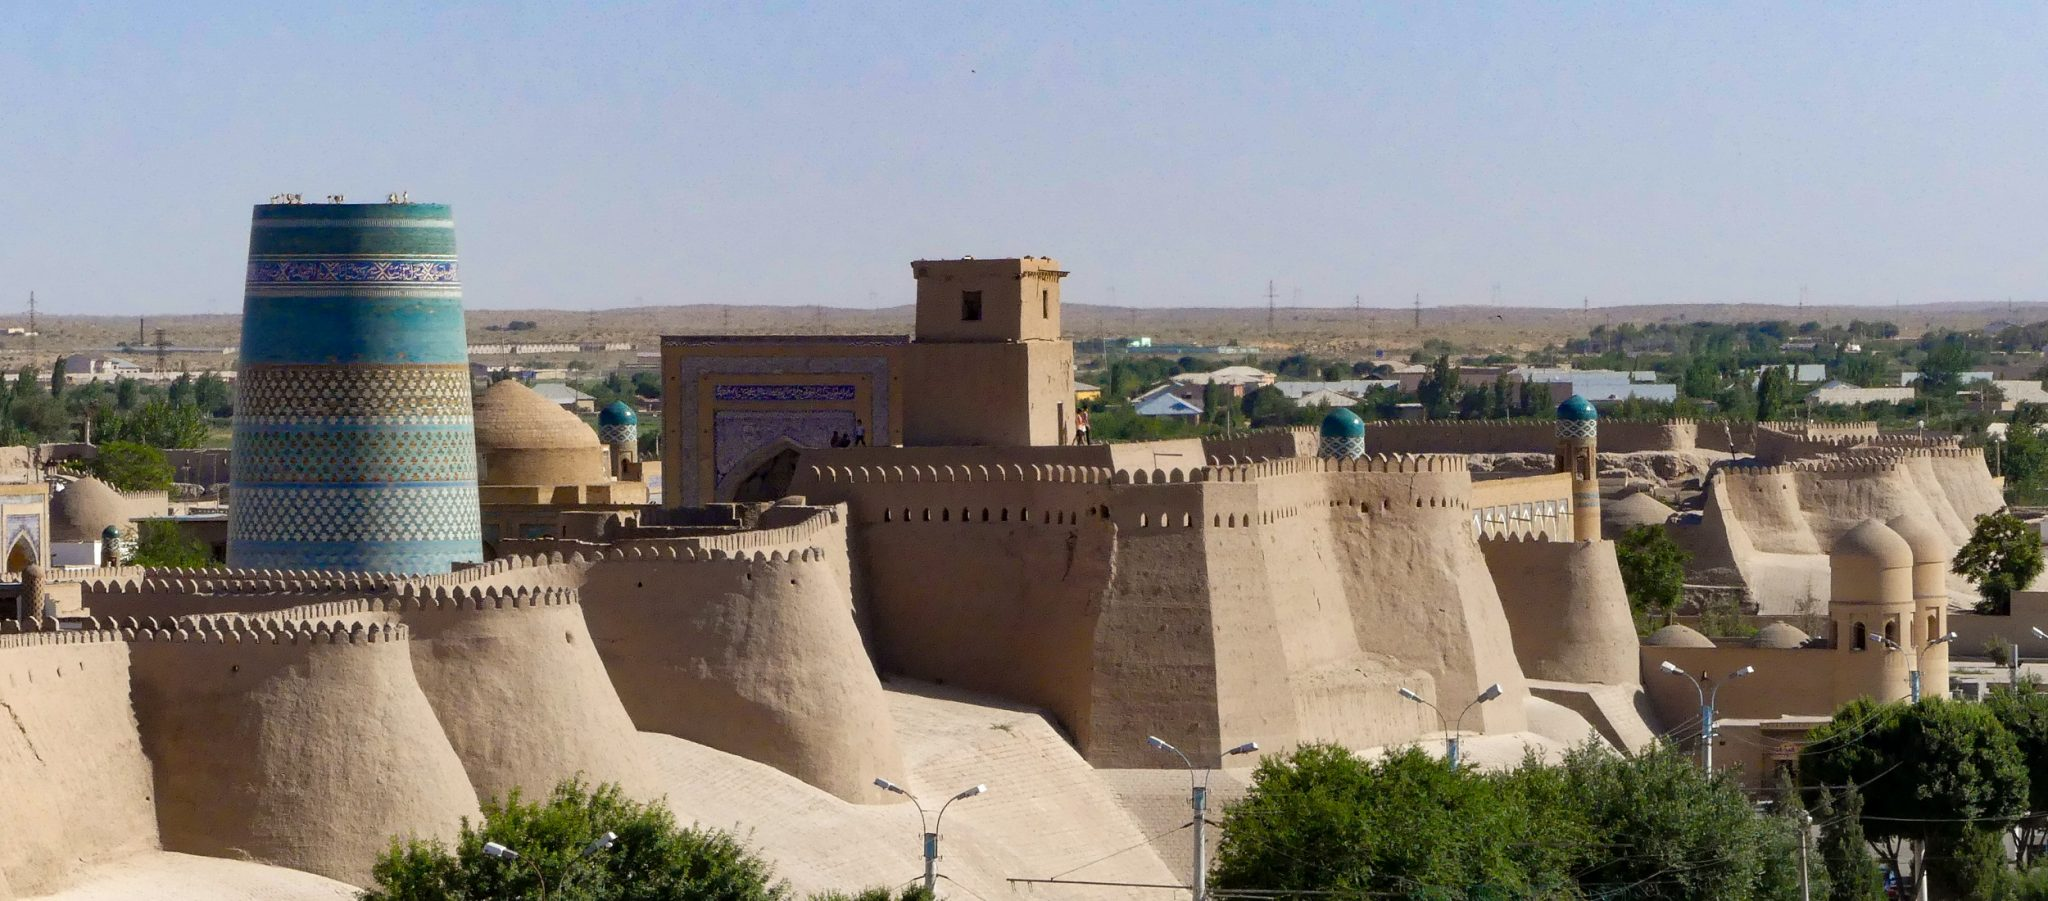 View of the city of Khiva, Uzbekistan